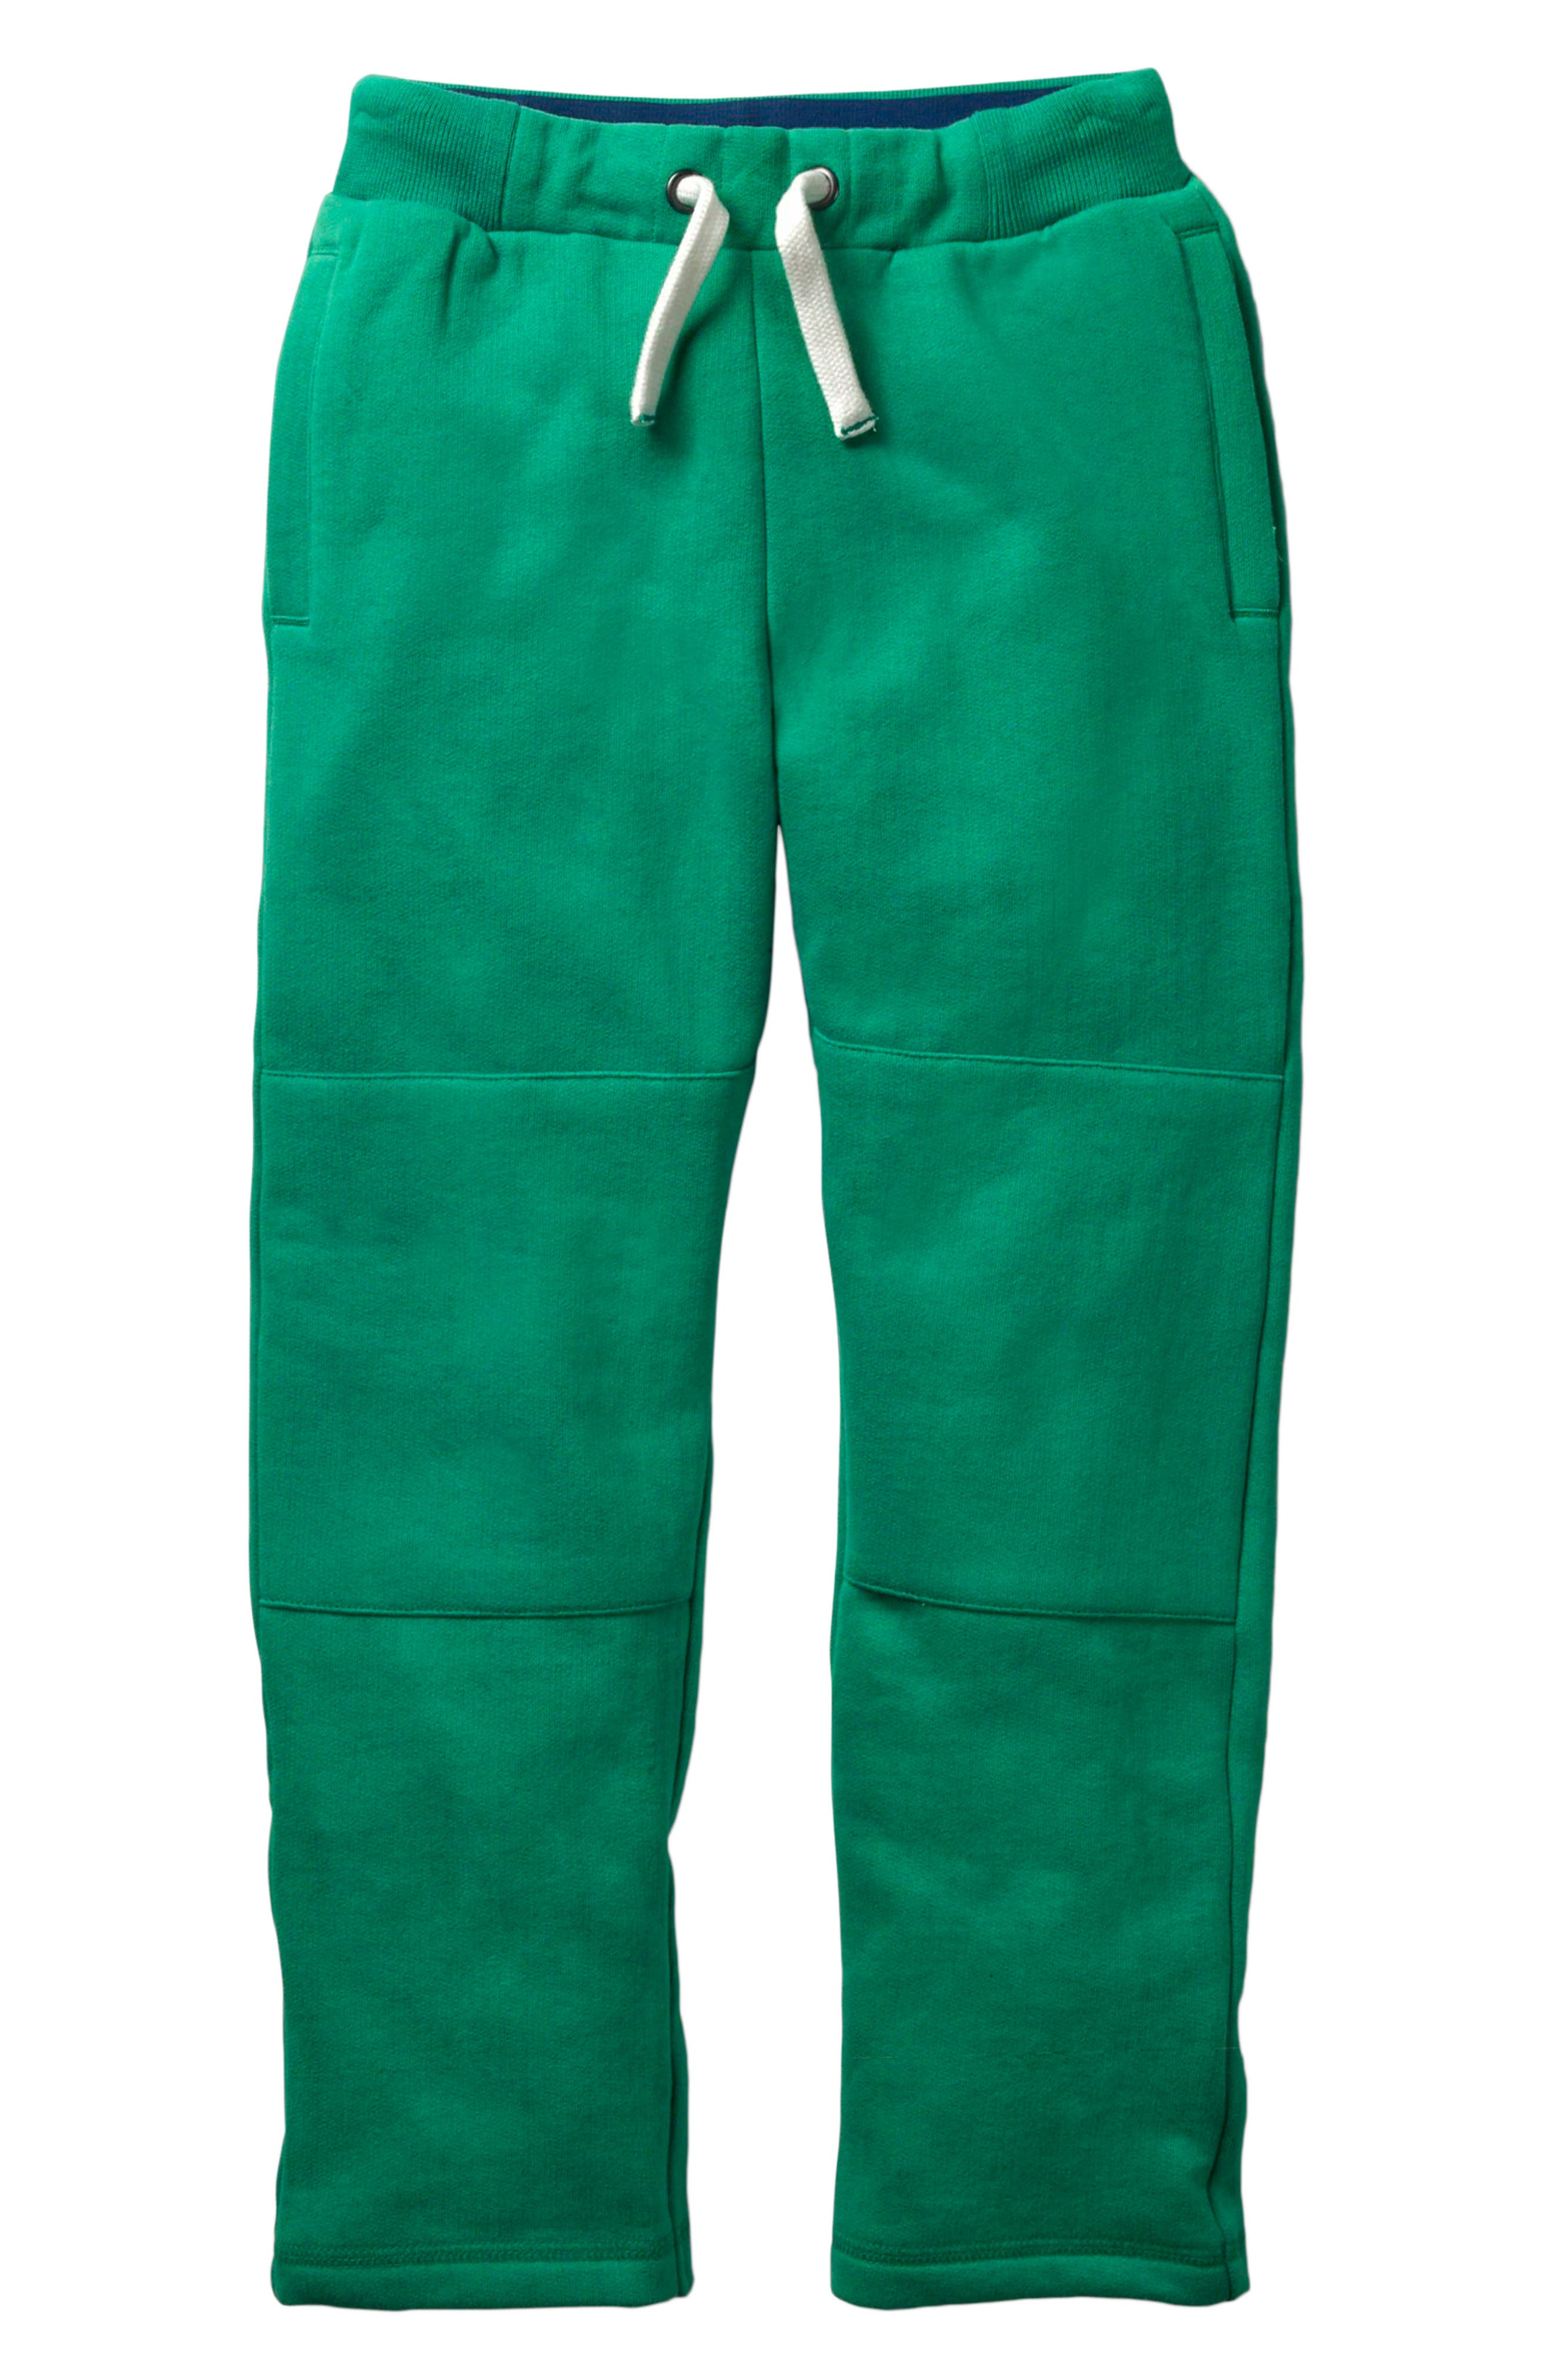 Warrior Knee Sweatpants,                             Main thumbnail 1, color,                             315